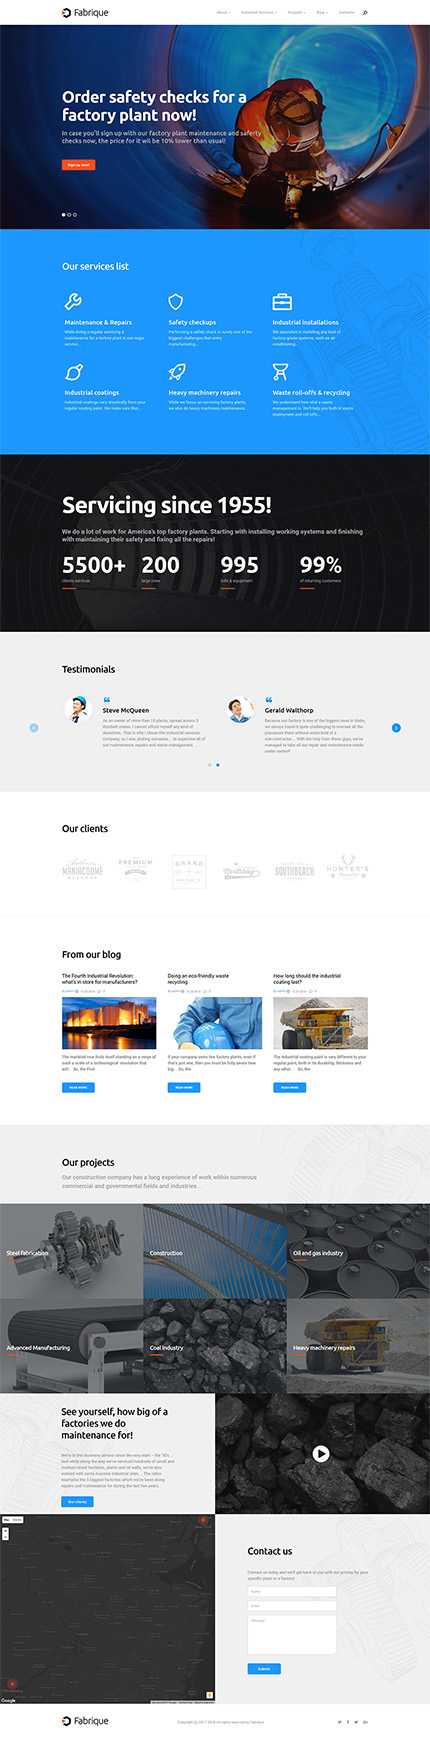 Industrial Most Popular website inspirations at your coffee break? Browse for more WordPress #templates! // Regular price: $75 // Sources available:.PHP, This theme is widgetized #Industrial #Most Popular #WordPress